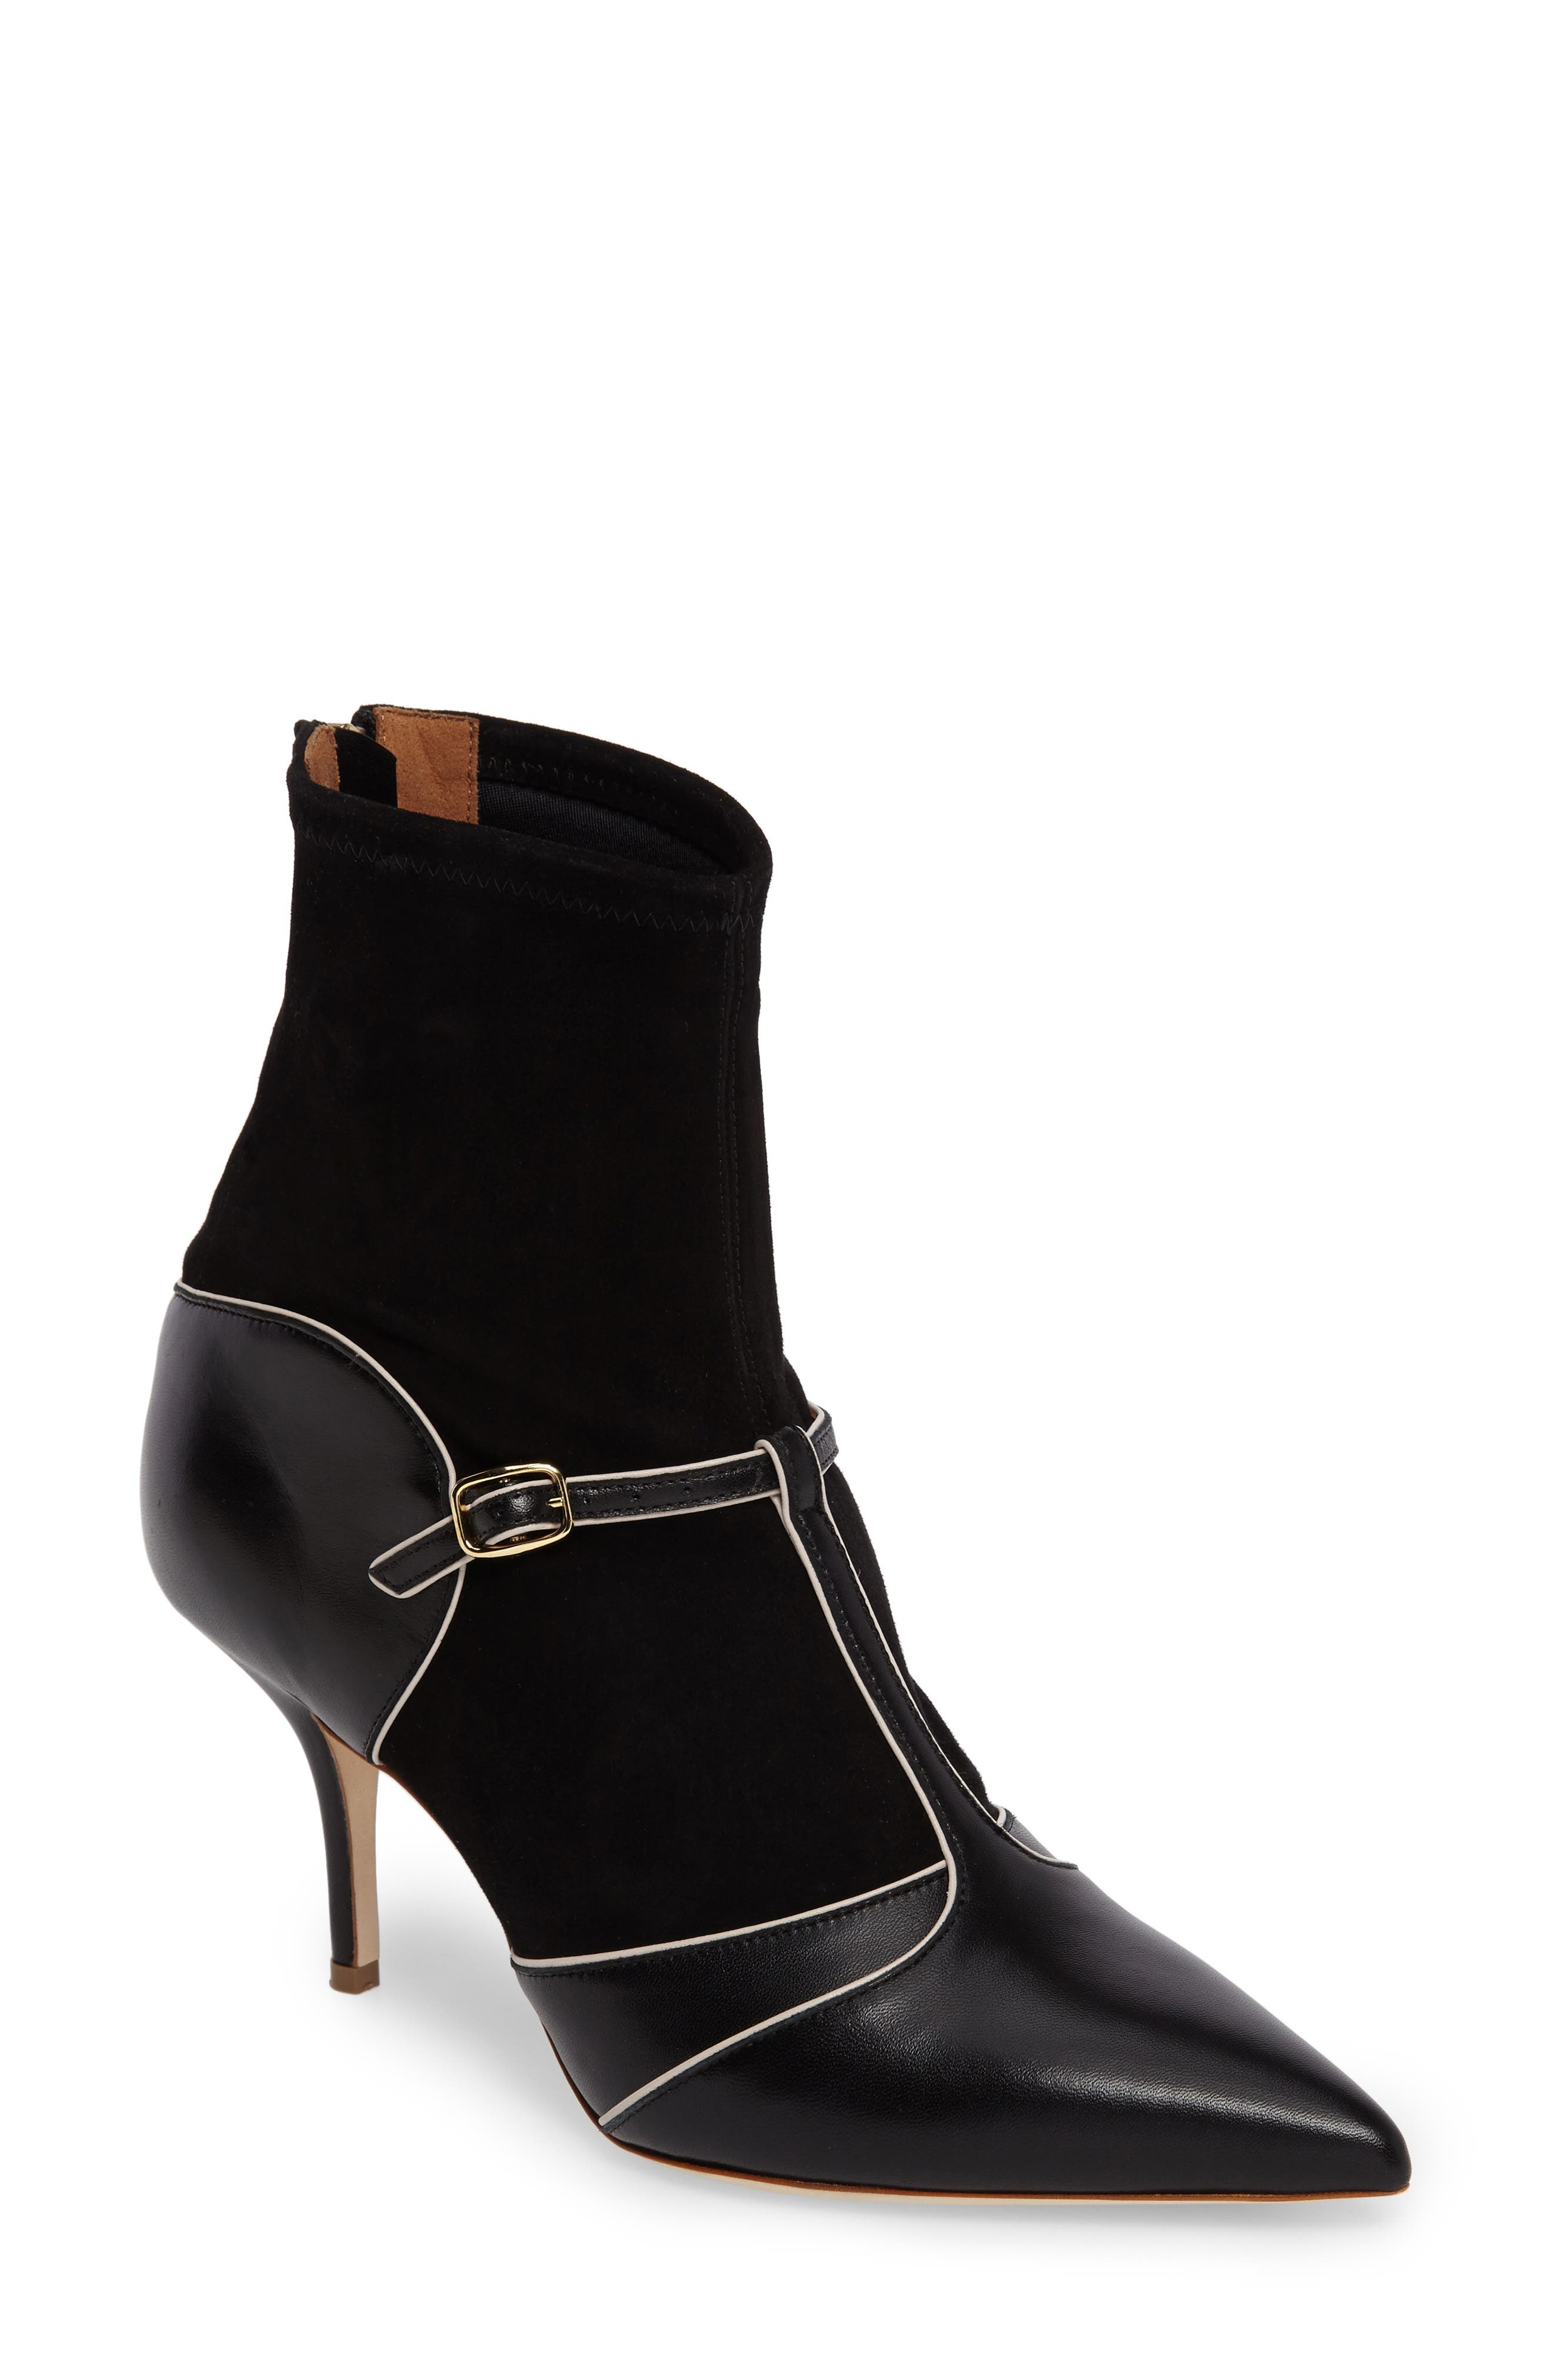 Sadie Bootie,                             Main thumbnail 1, color,                             Black/ Ice